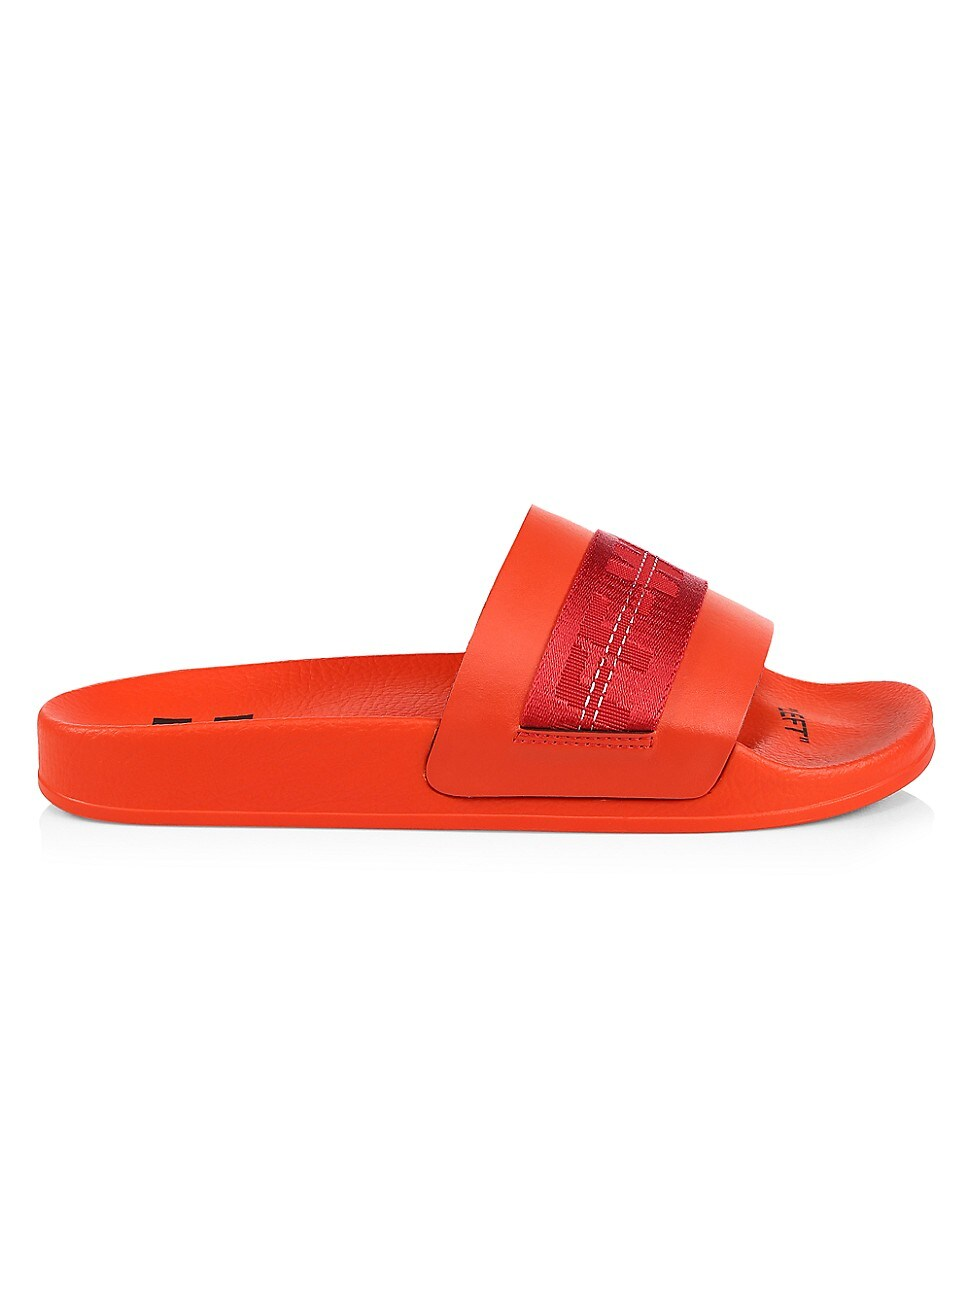 Off-White MEN'S INDUSTRIAL LOGO SLIDE SANDALS